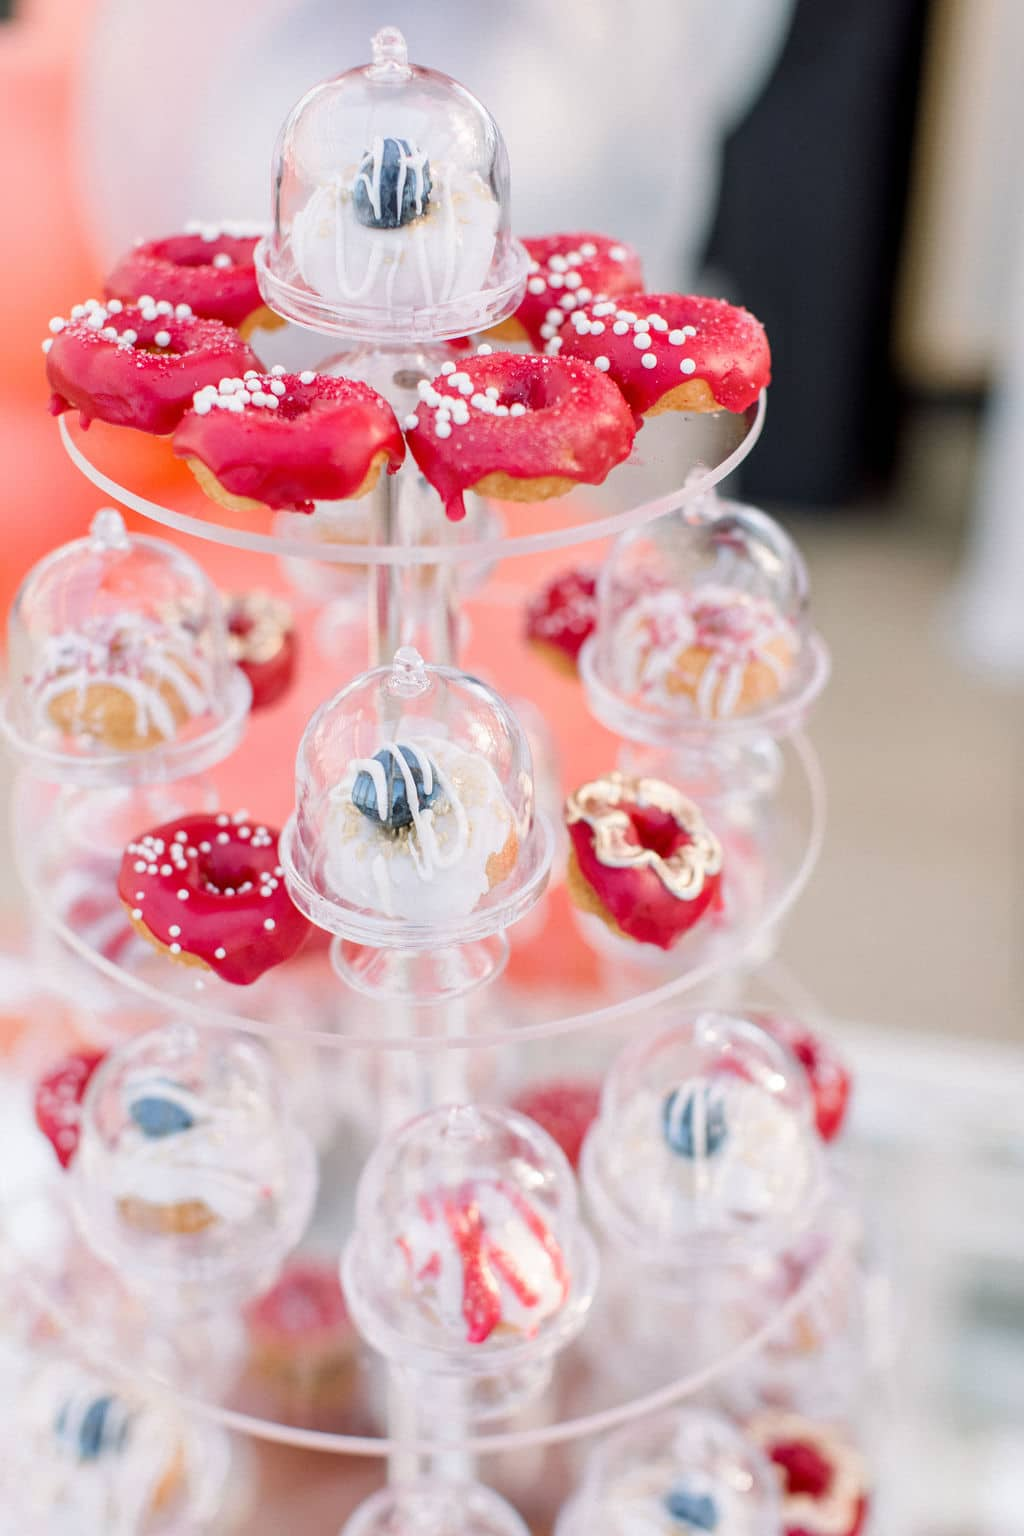 some red sweets that match the berry wedding theme and are yummy